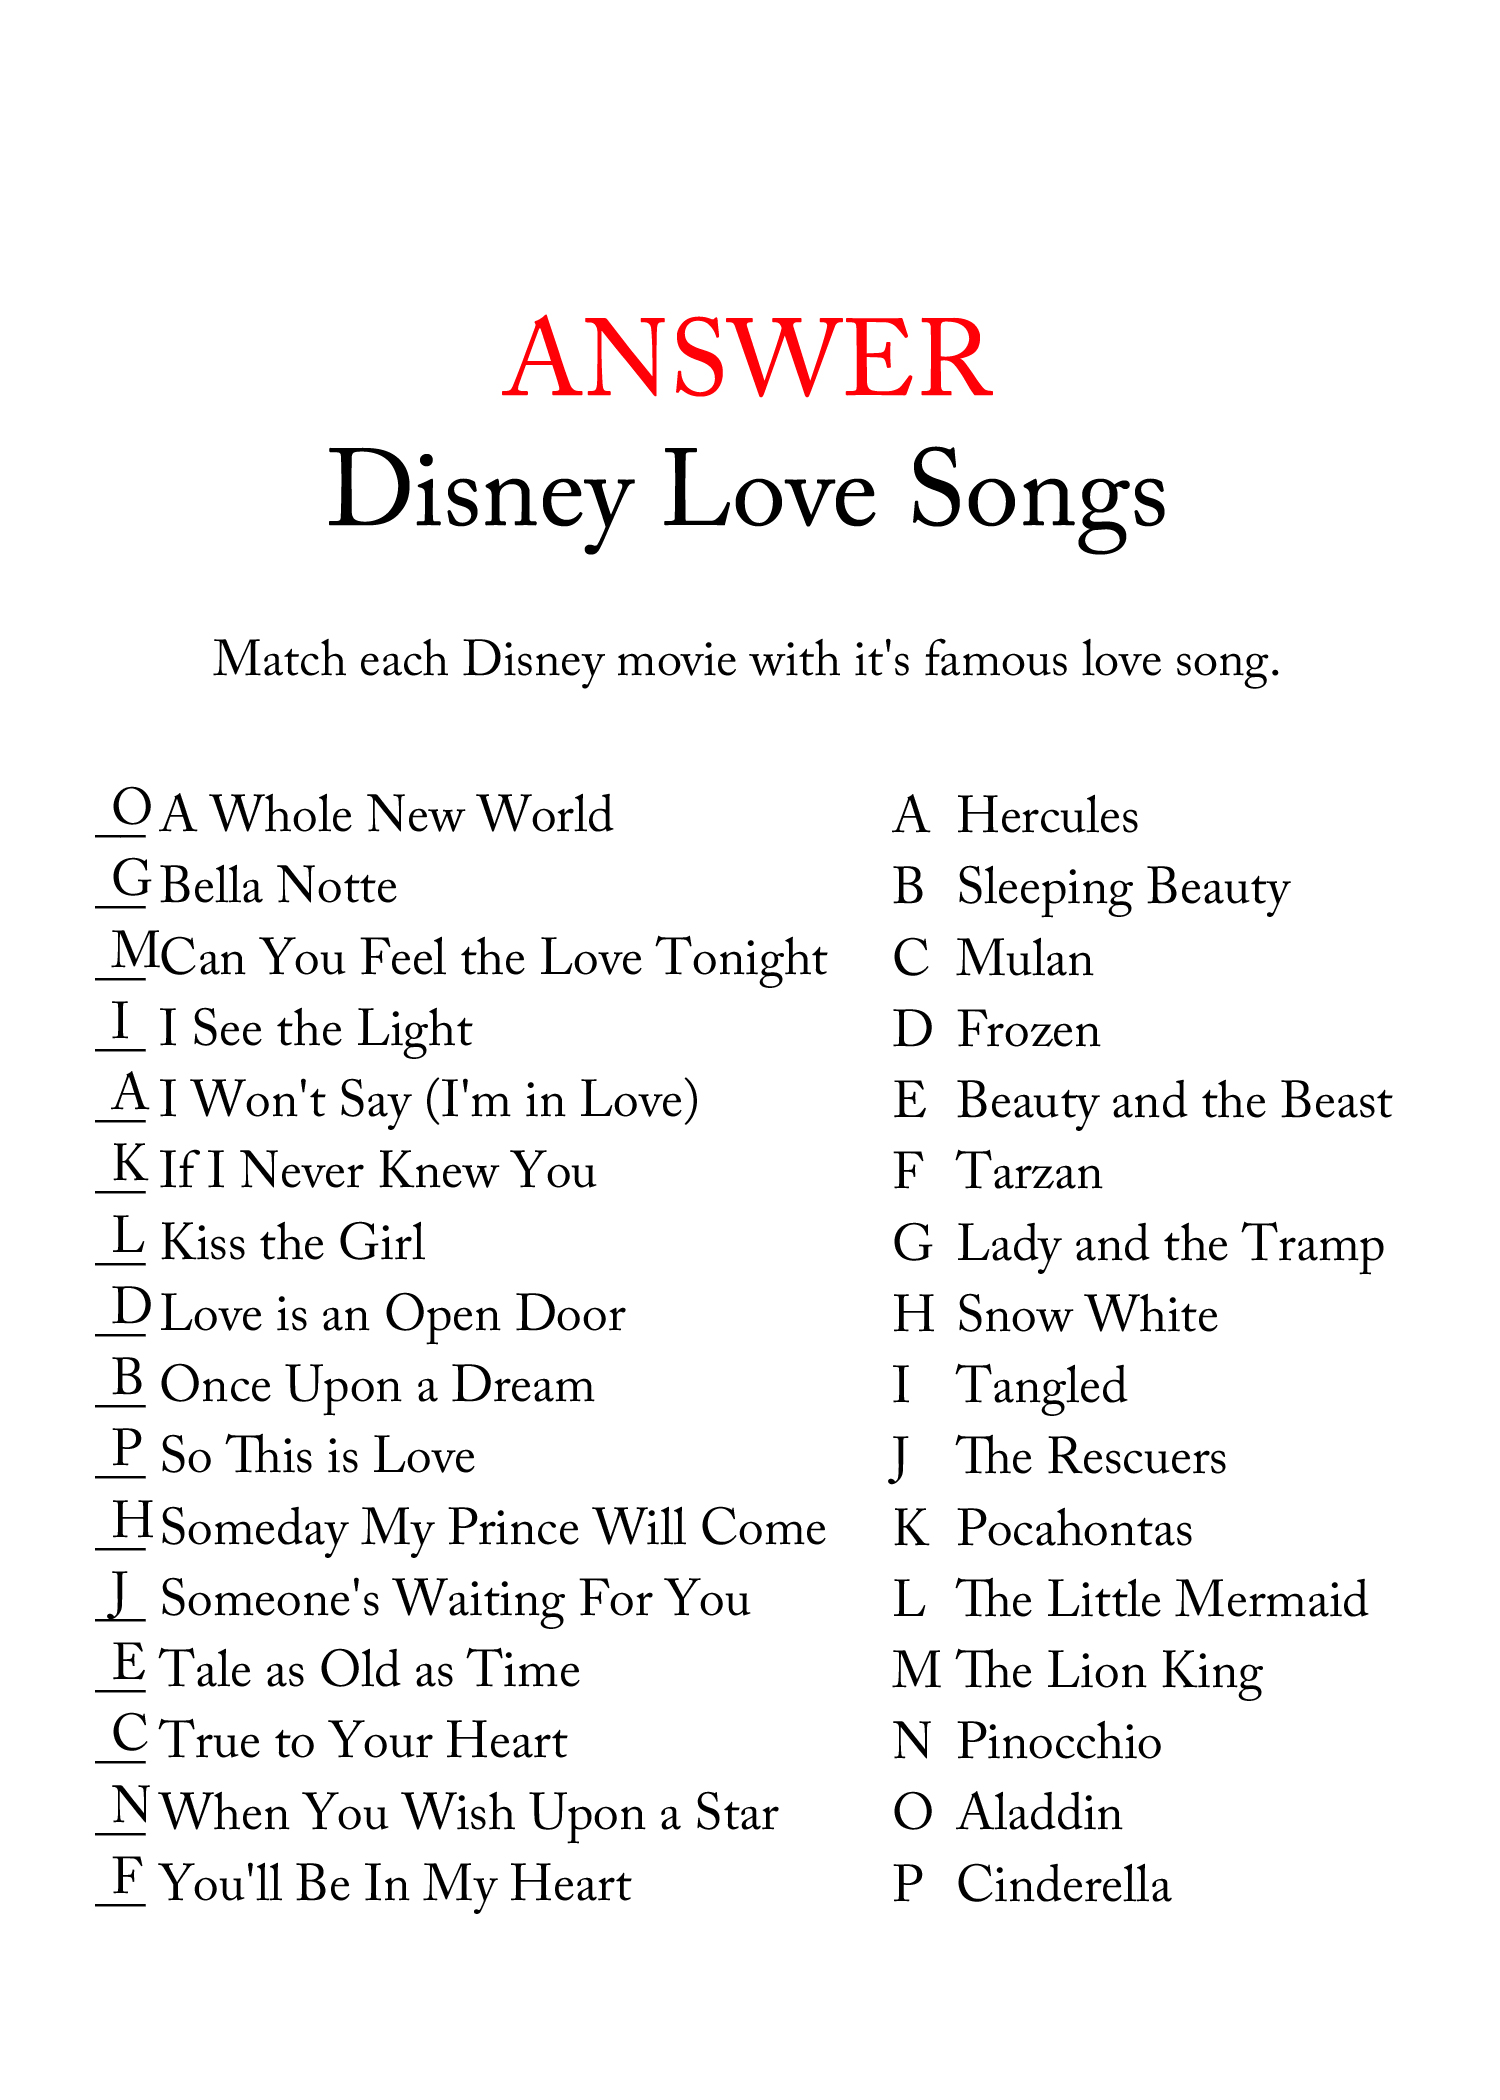 Free Disney Love Song Bridal Shower Game